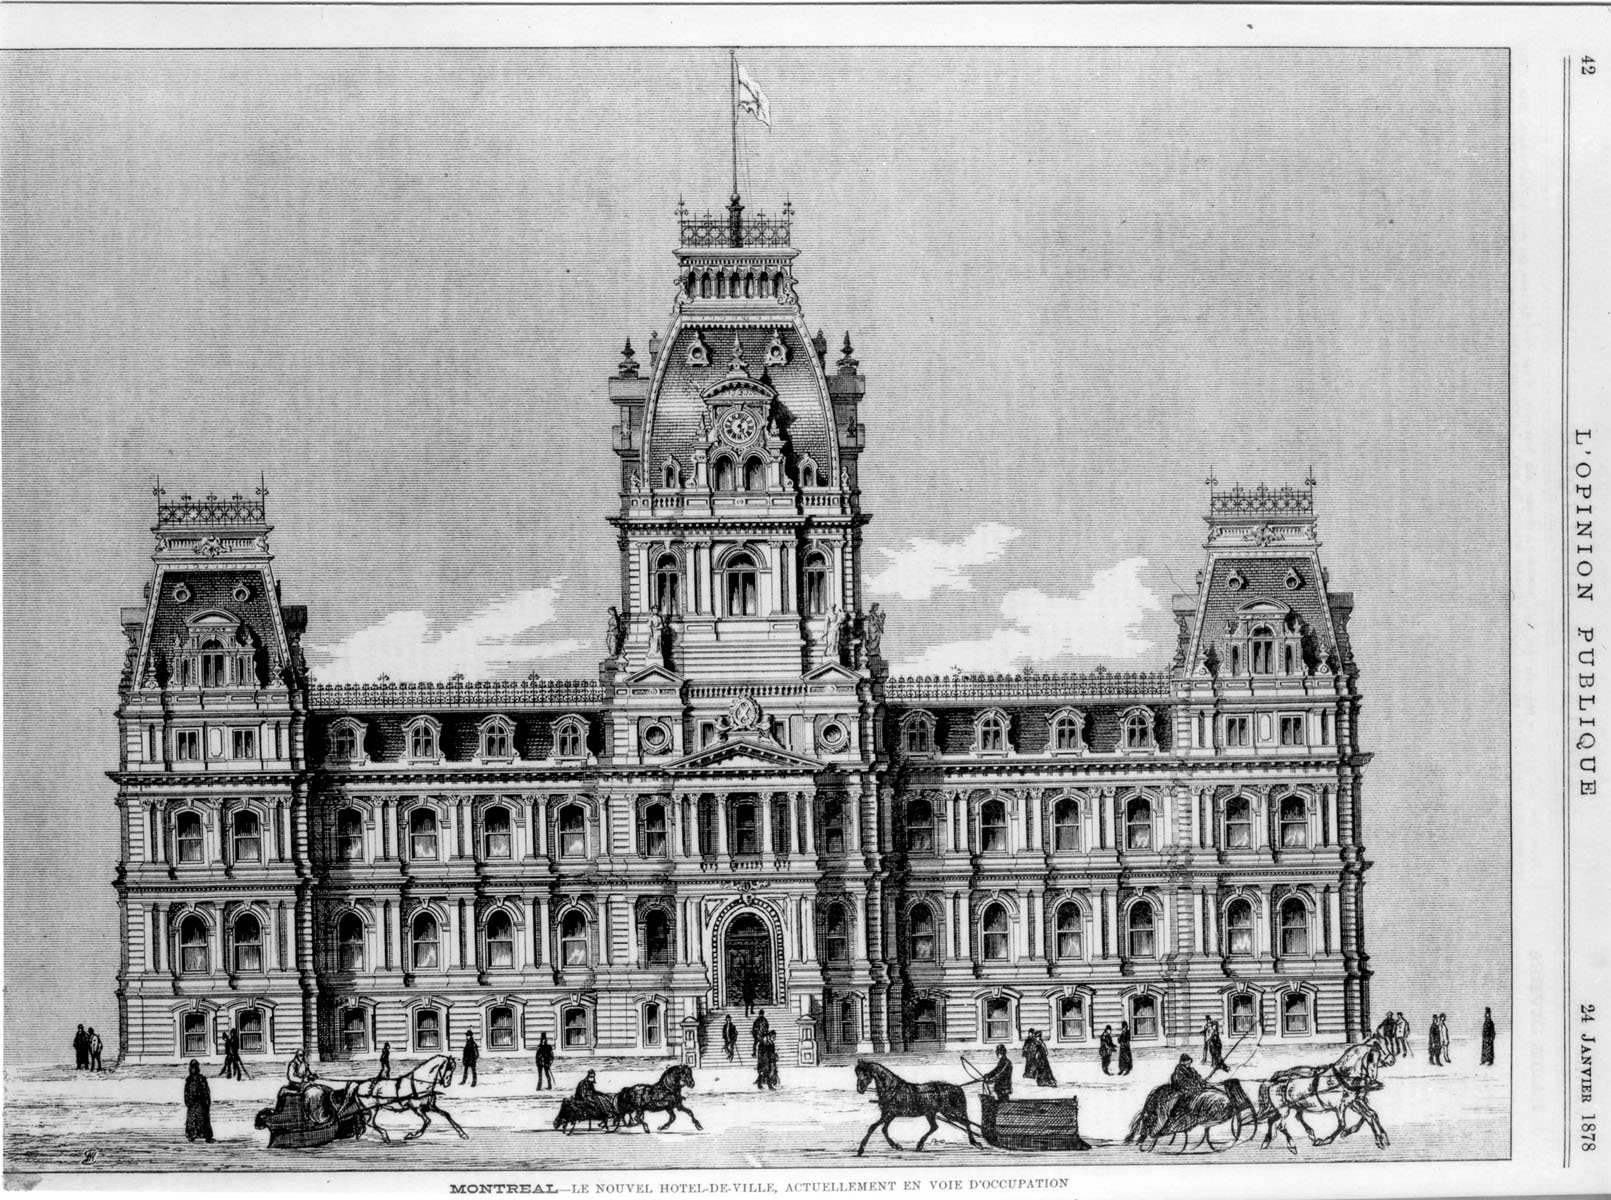 Illustration de l'hôtel de ville en 1878.